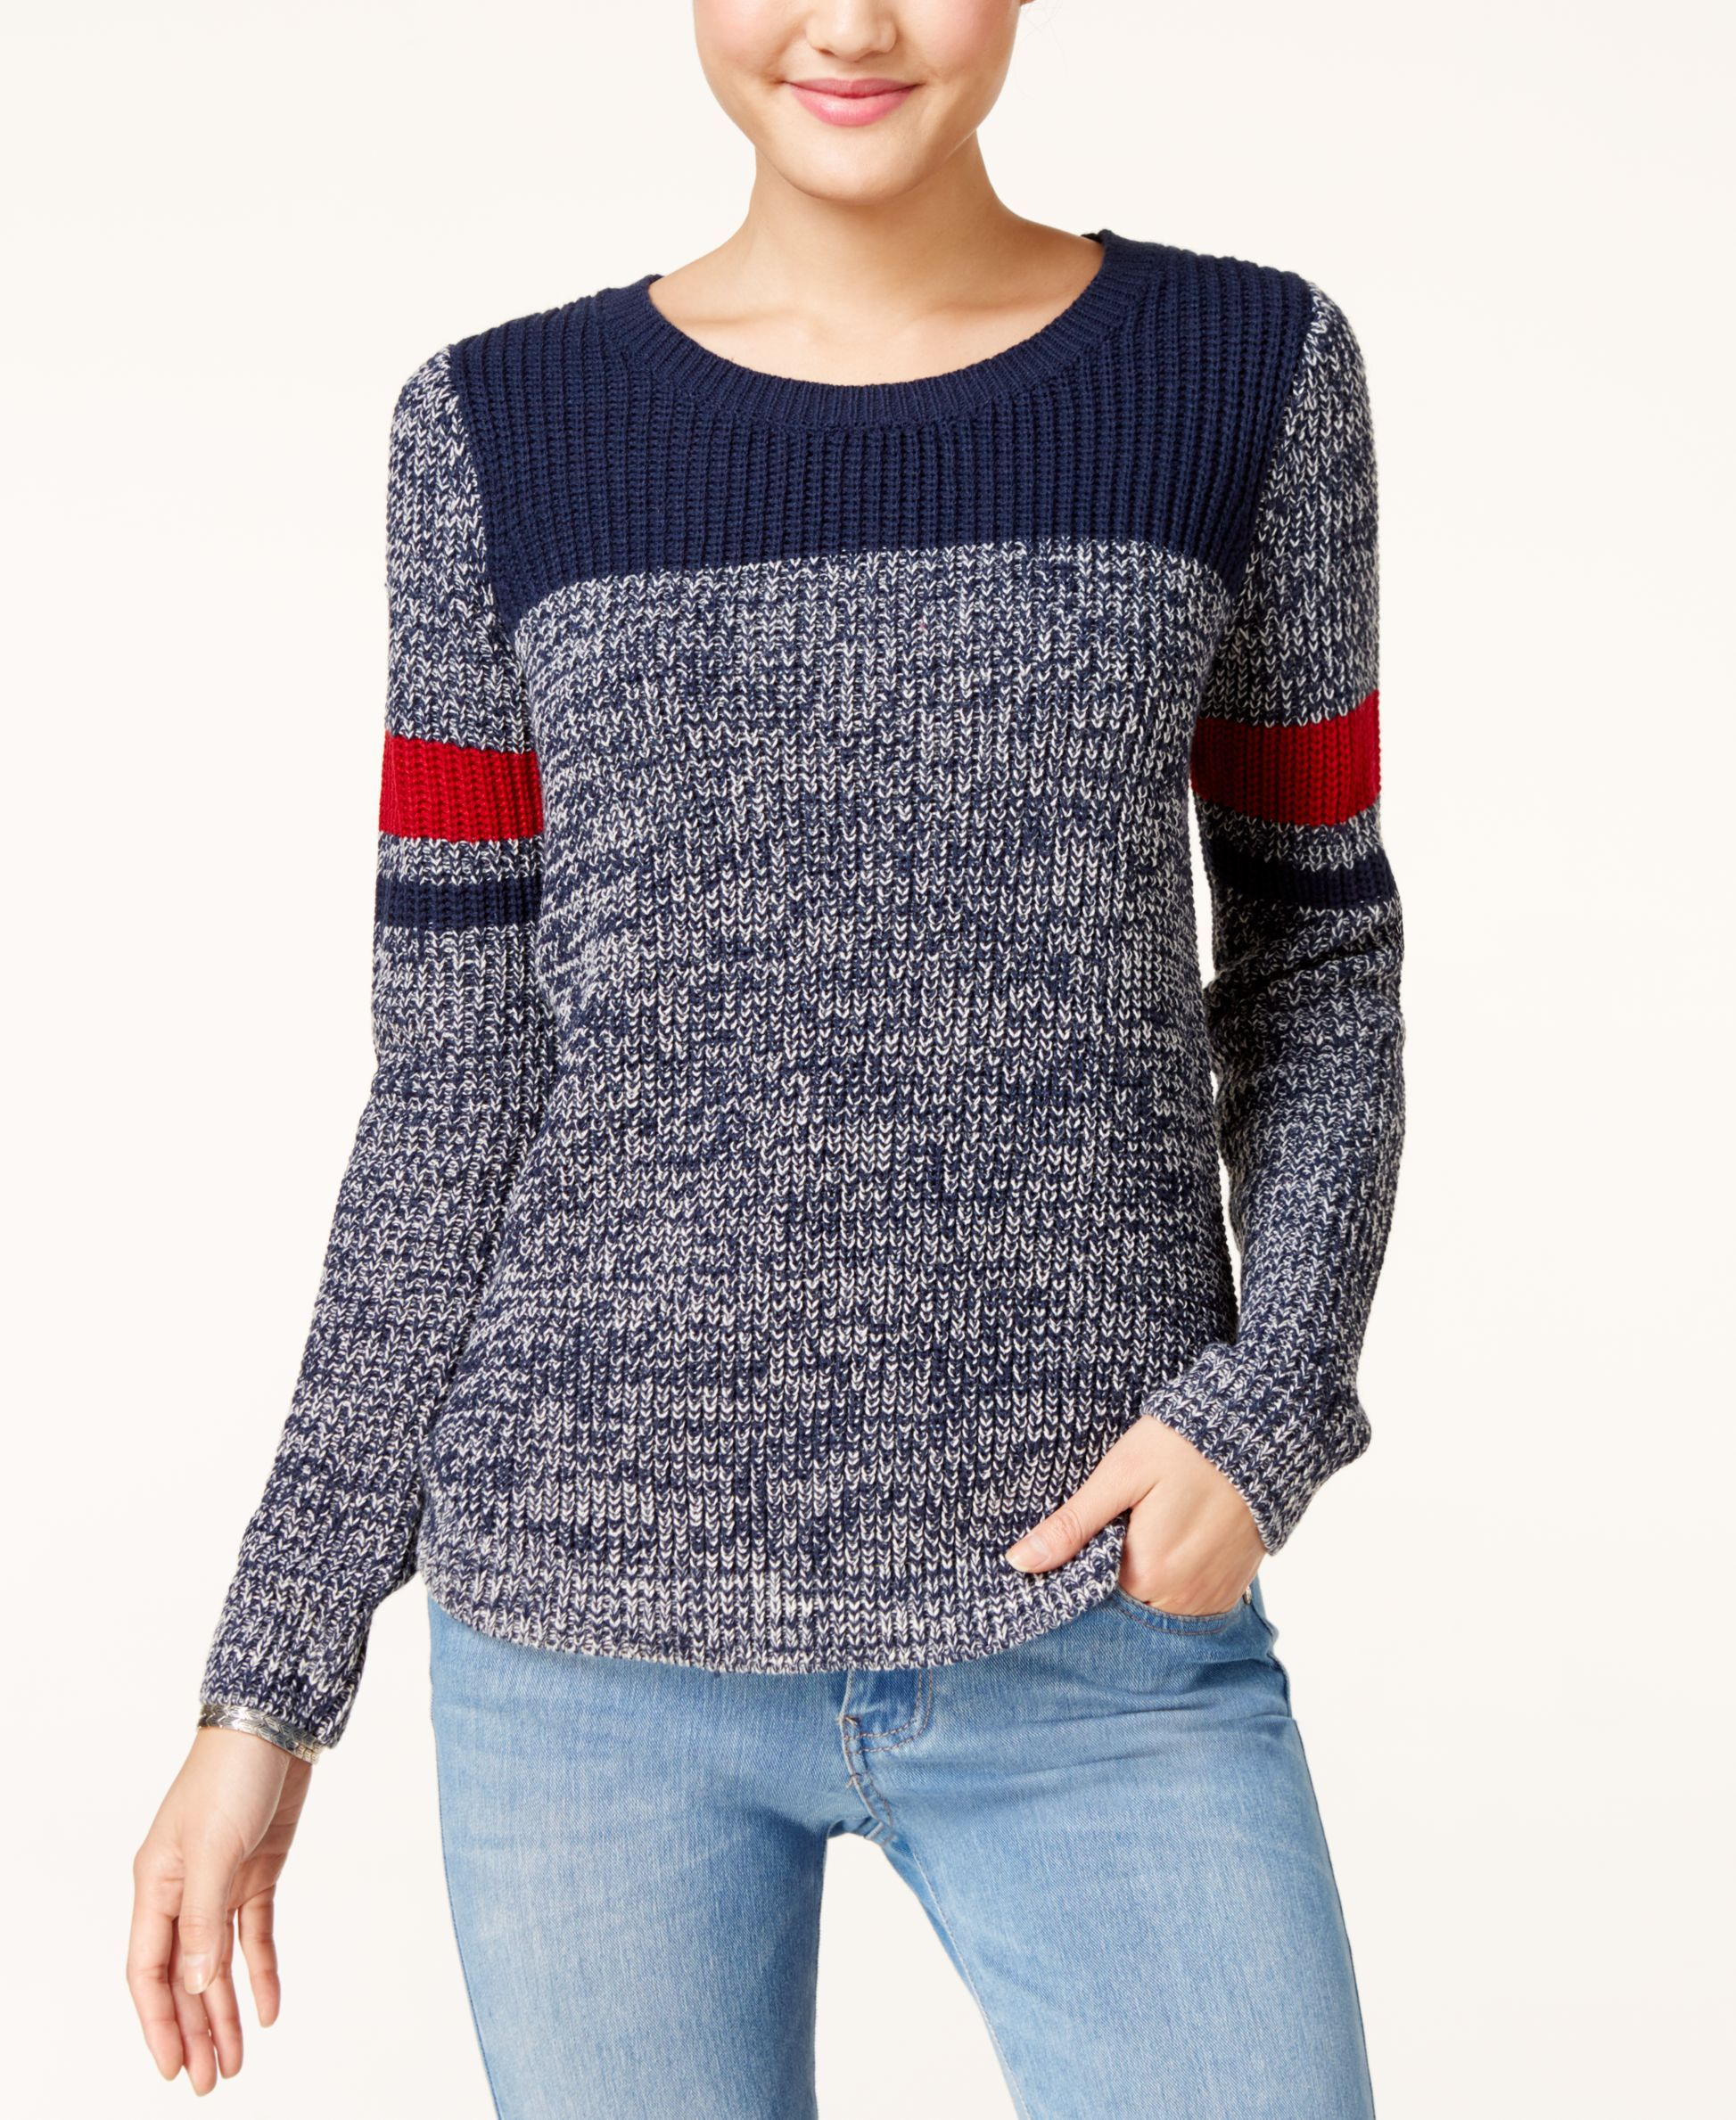 ddbfb634a8 Freshman Juniors  Marled Colorblock Pullover Sweater